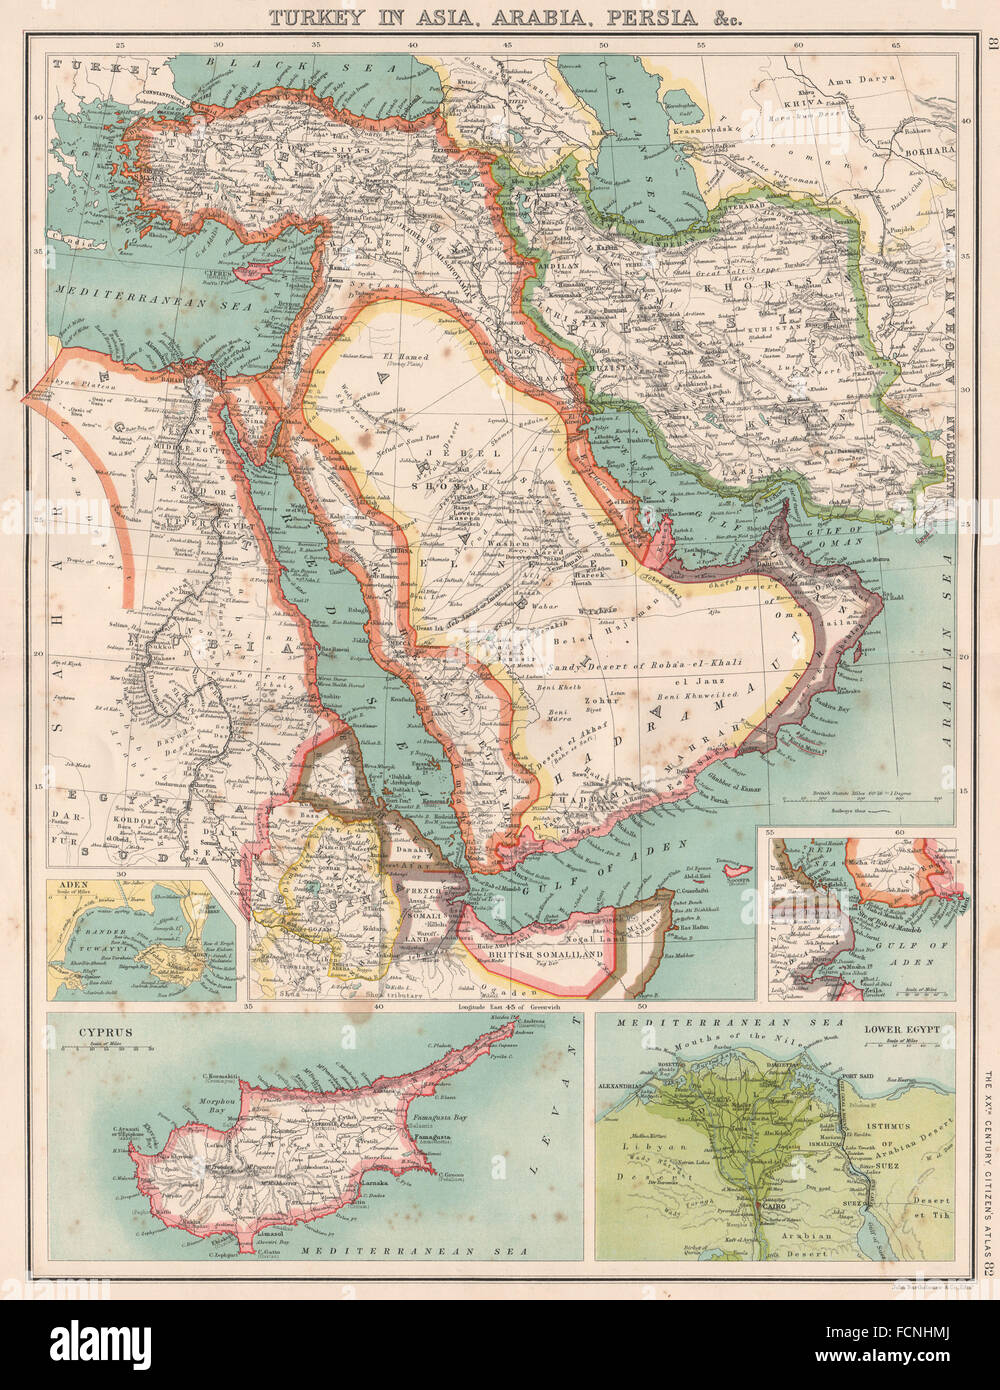 Middle eastturkey asia arabia persiairanegypt omanprus nile middle eastturkey asia arabia persiairanegypt omanprus nile delta 1901 map gumiabroncs Image collections